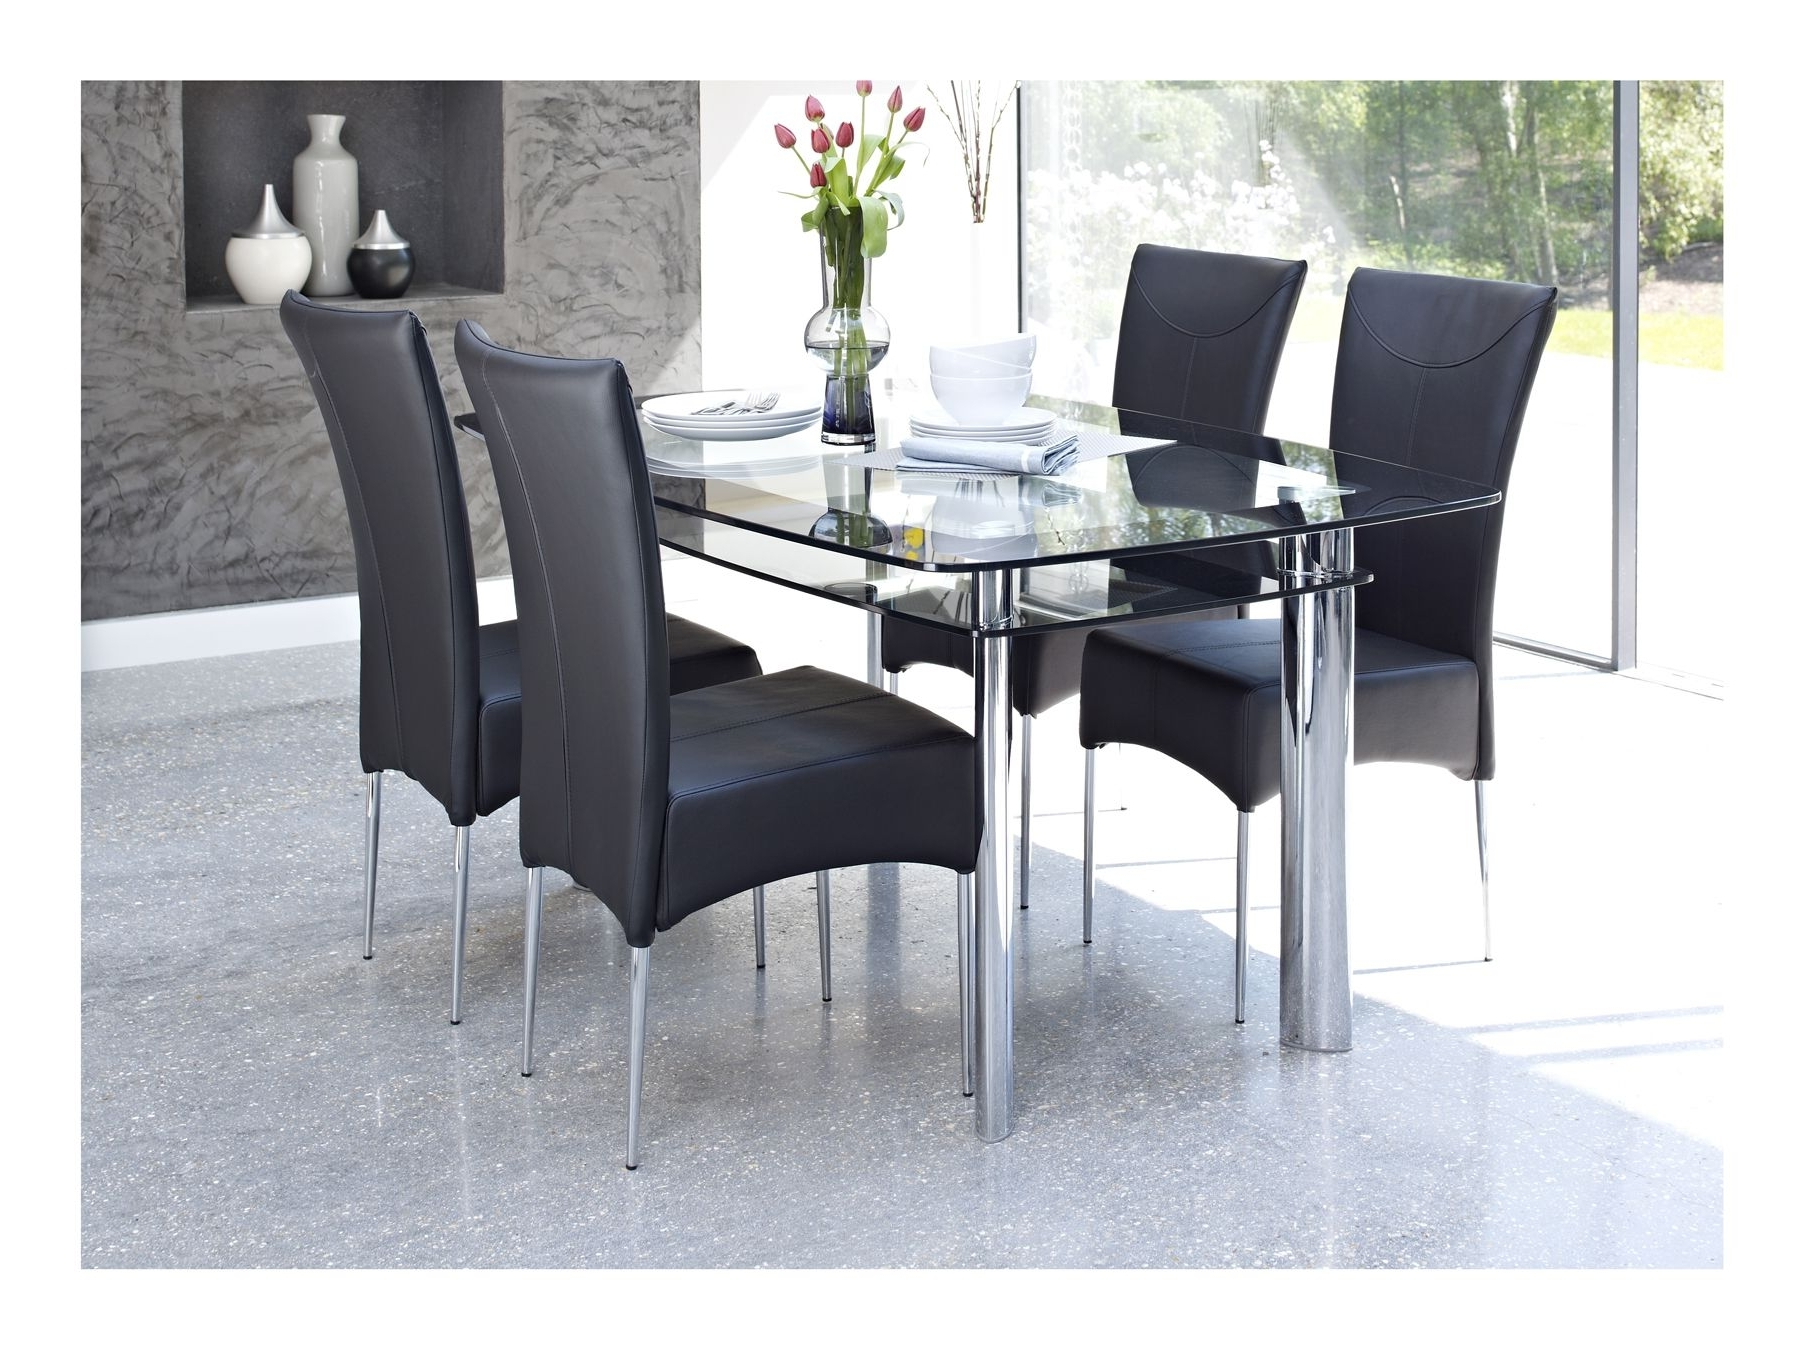 Black Glass Dining Tables And 4 Chairs In Most Recent Delightful Kitchen Black Glass Dining Table And 4 Chairs Room Ideas (View 2 of 25)